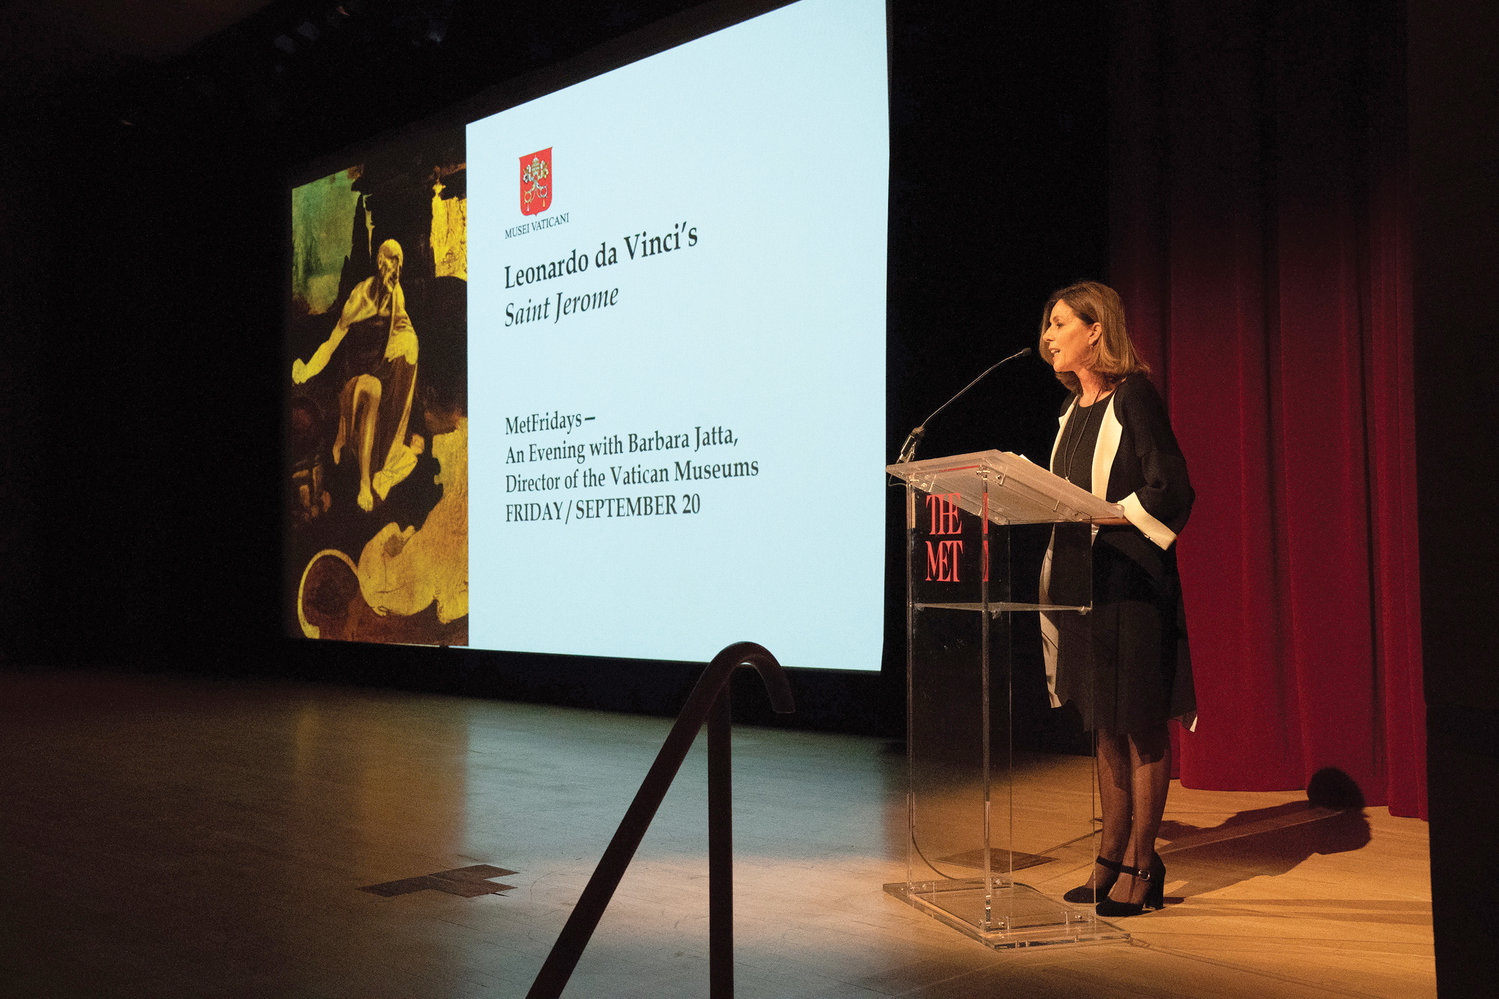 Dr. Barbara Jatta, director of the Vatican Museums, delivers a lecture on Sept. 20 about a renowned work of Leonardo da Vinci on special loan at The Metropolitan Museum of Art 